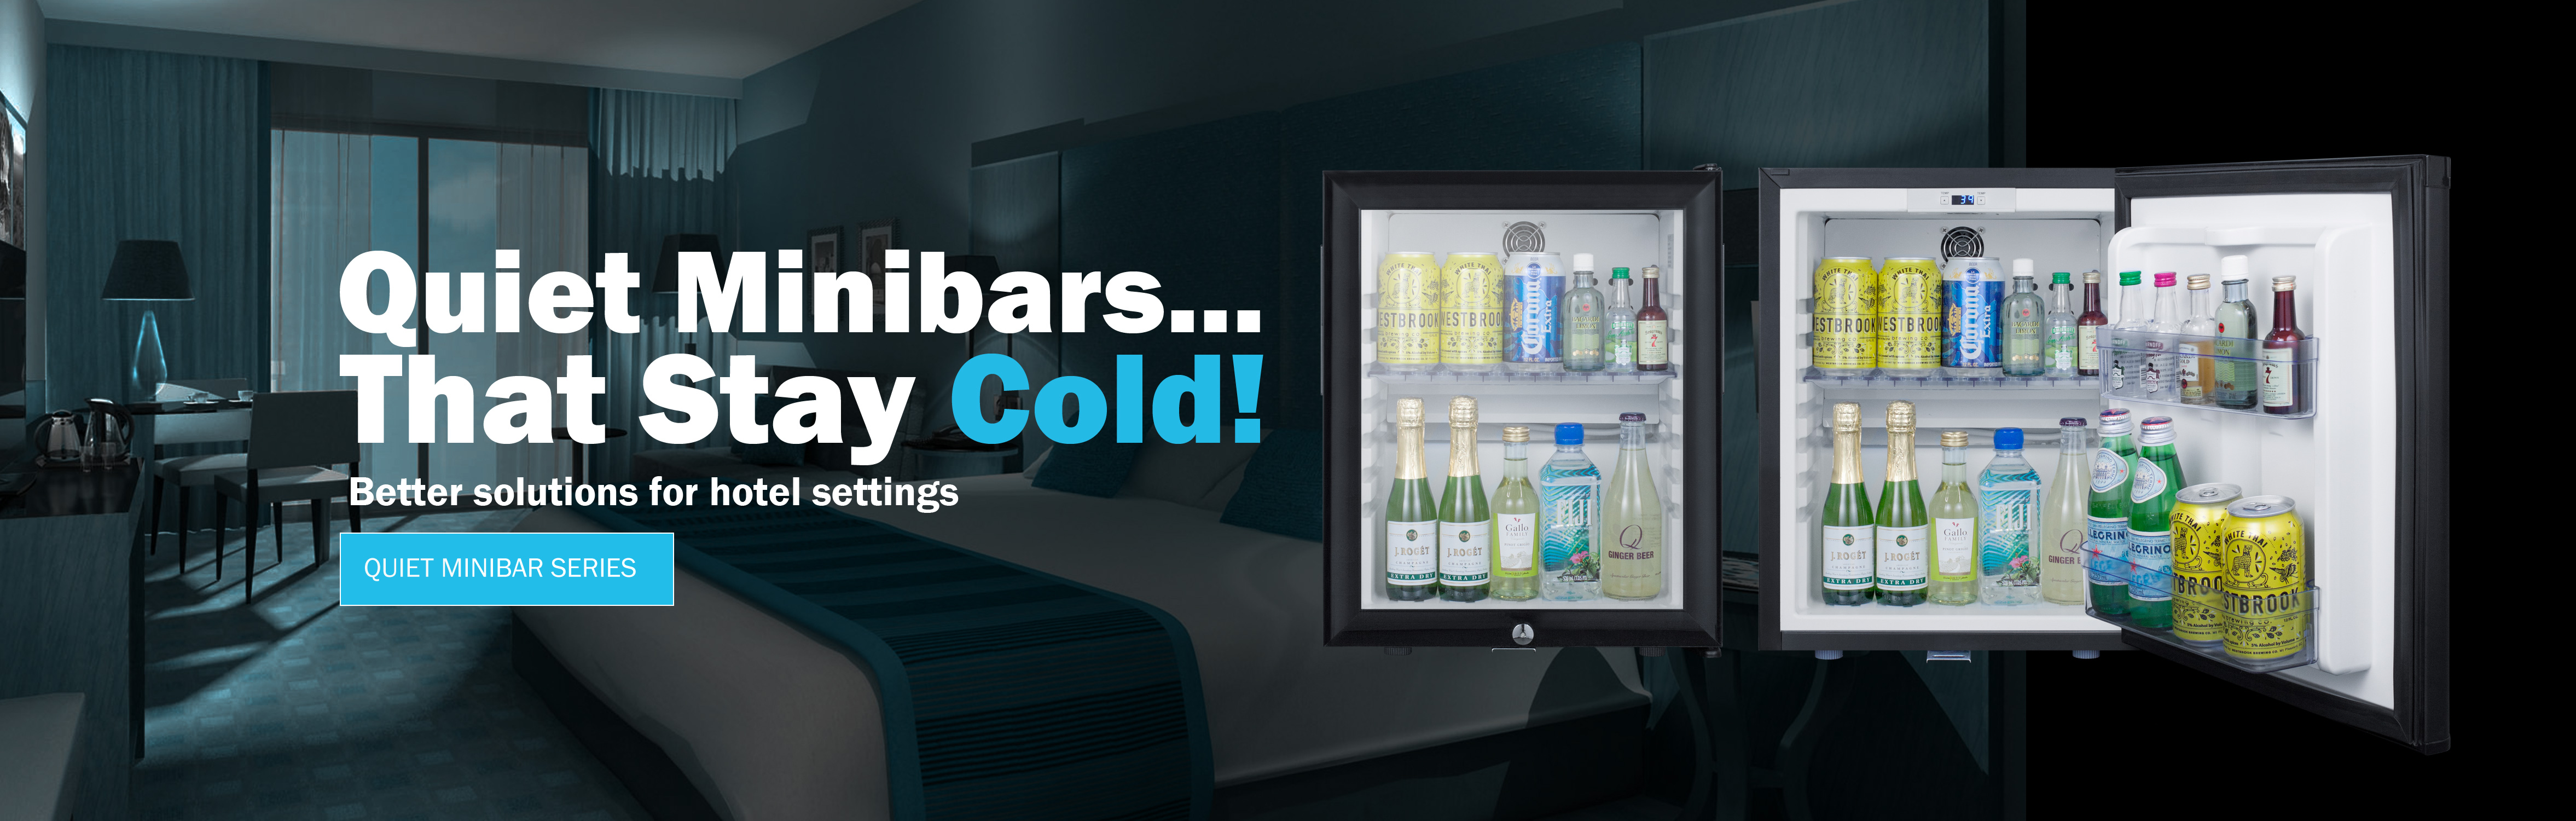 Quiet Minibars...That Stay Cold